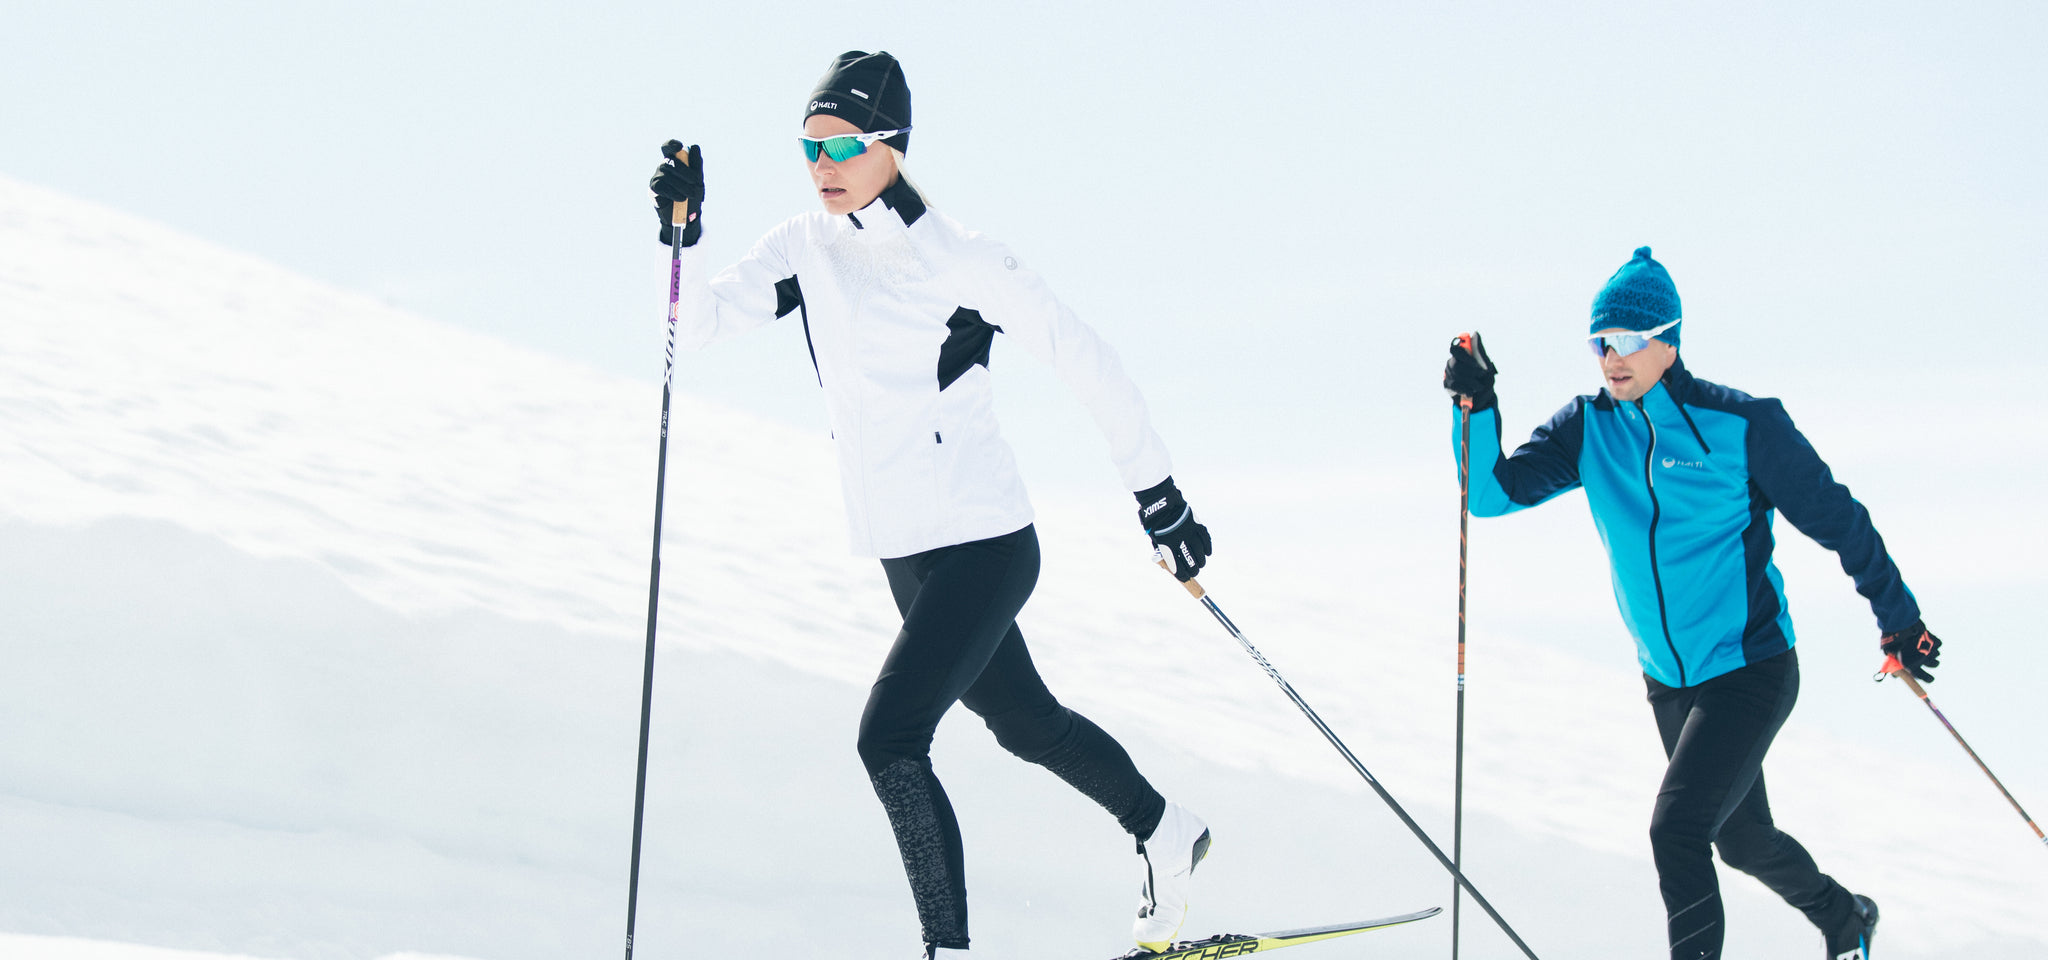 Halti Cross Country Skiing Clothing